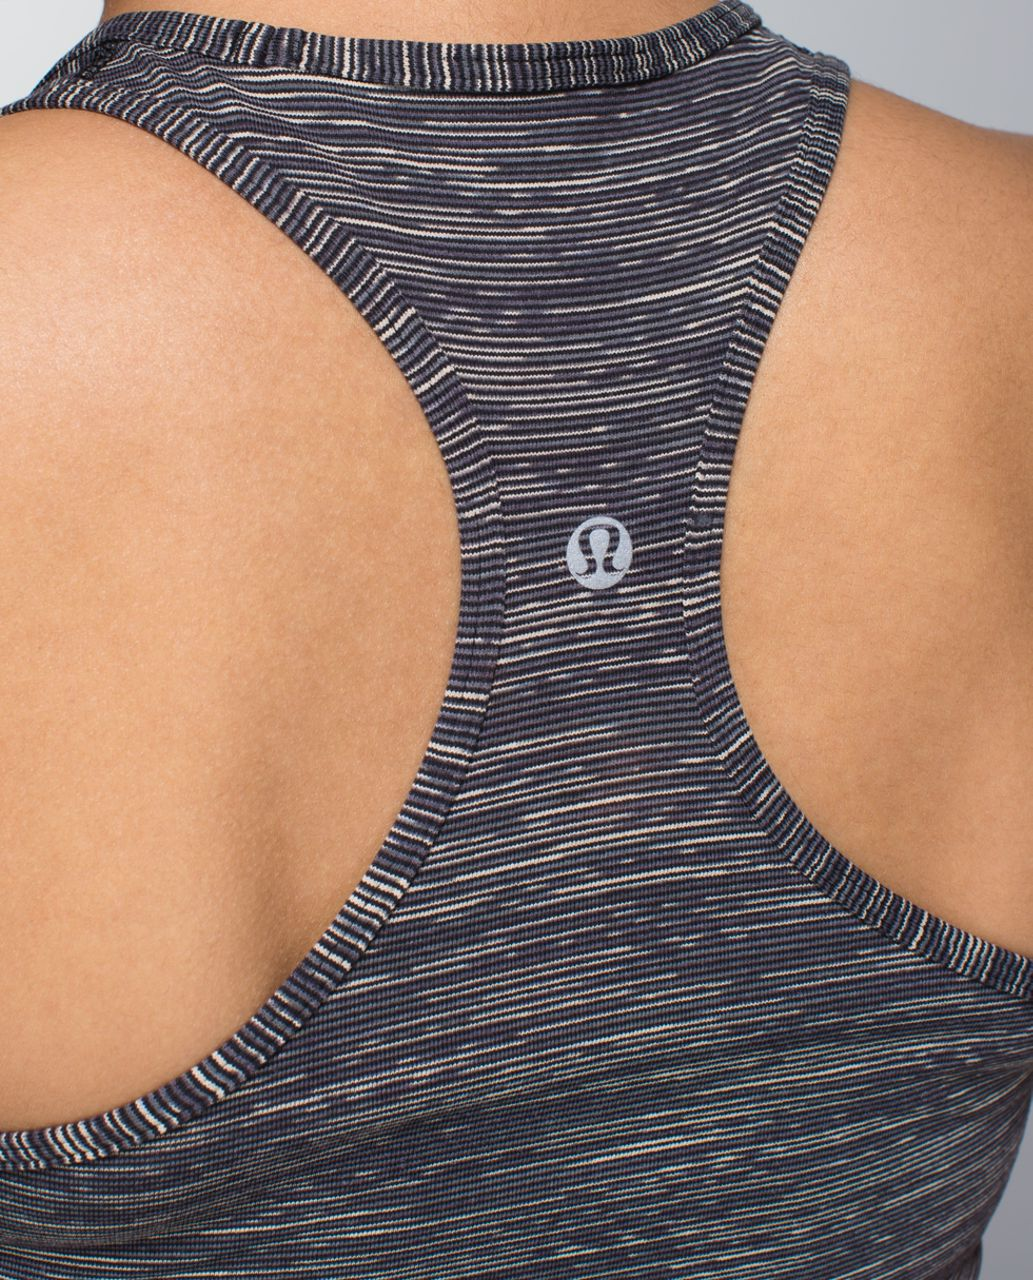 Lululemon Cool Racerback - Wee Are From Space Black Cashew